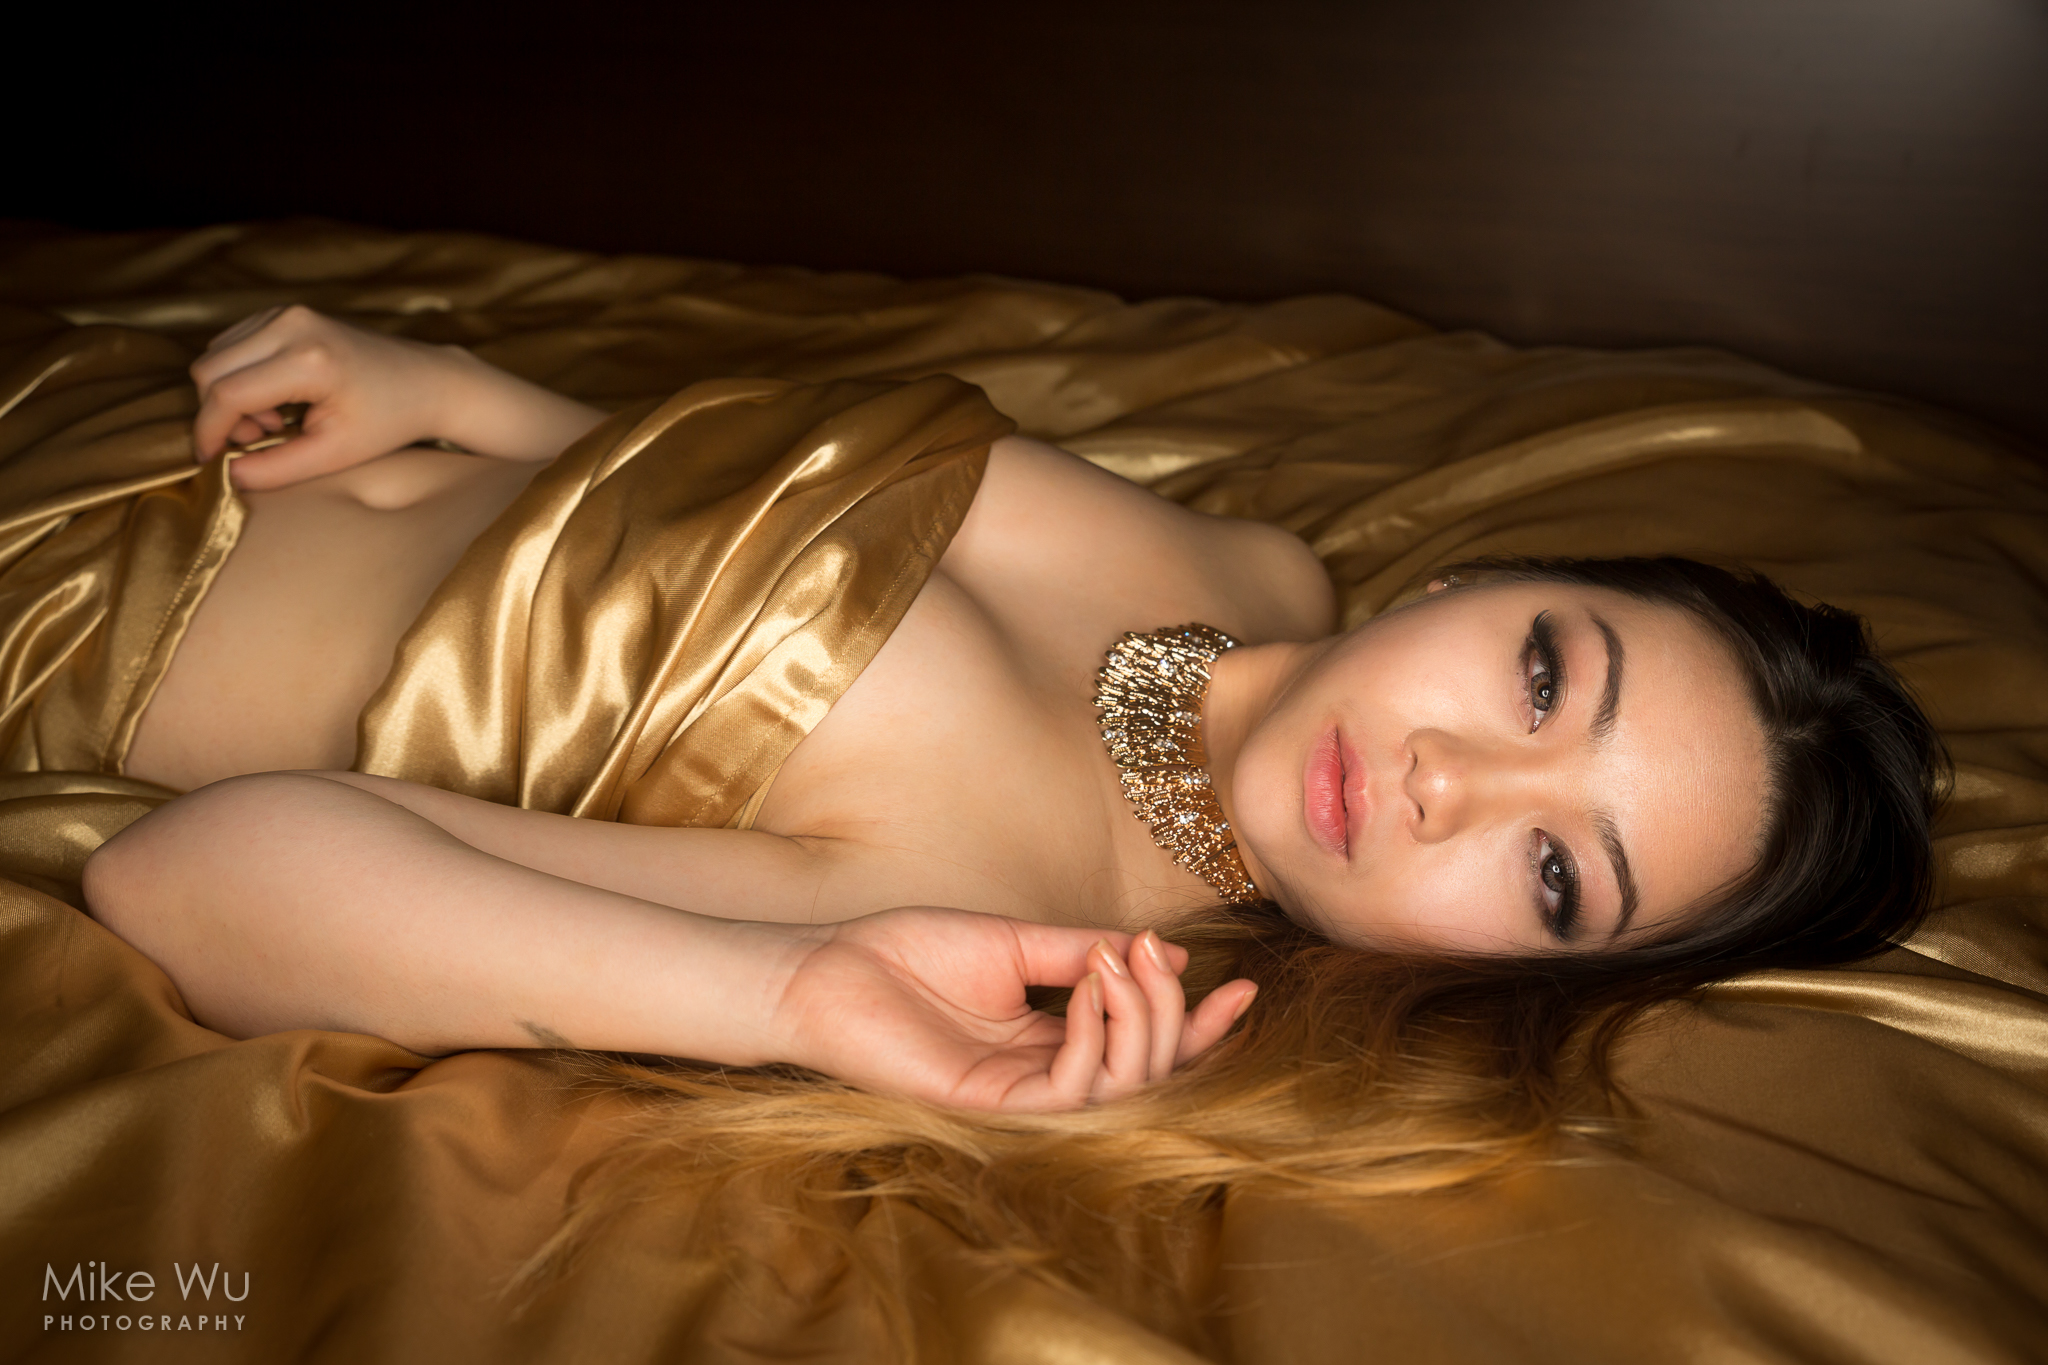 gold, jewelry, necklace, satin, sheets, bed, lying, asian, blond, beautiful, female, girl, boudoir, sensual, golden, shiny